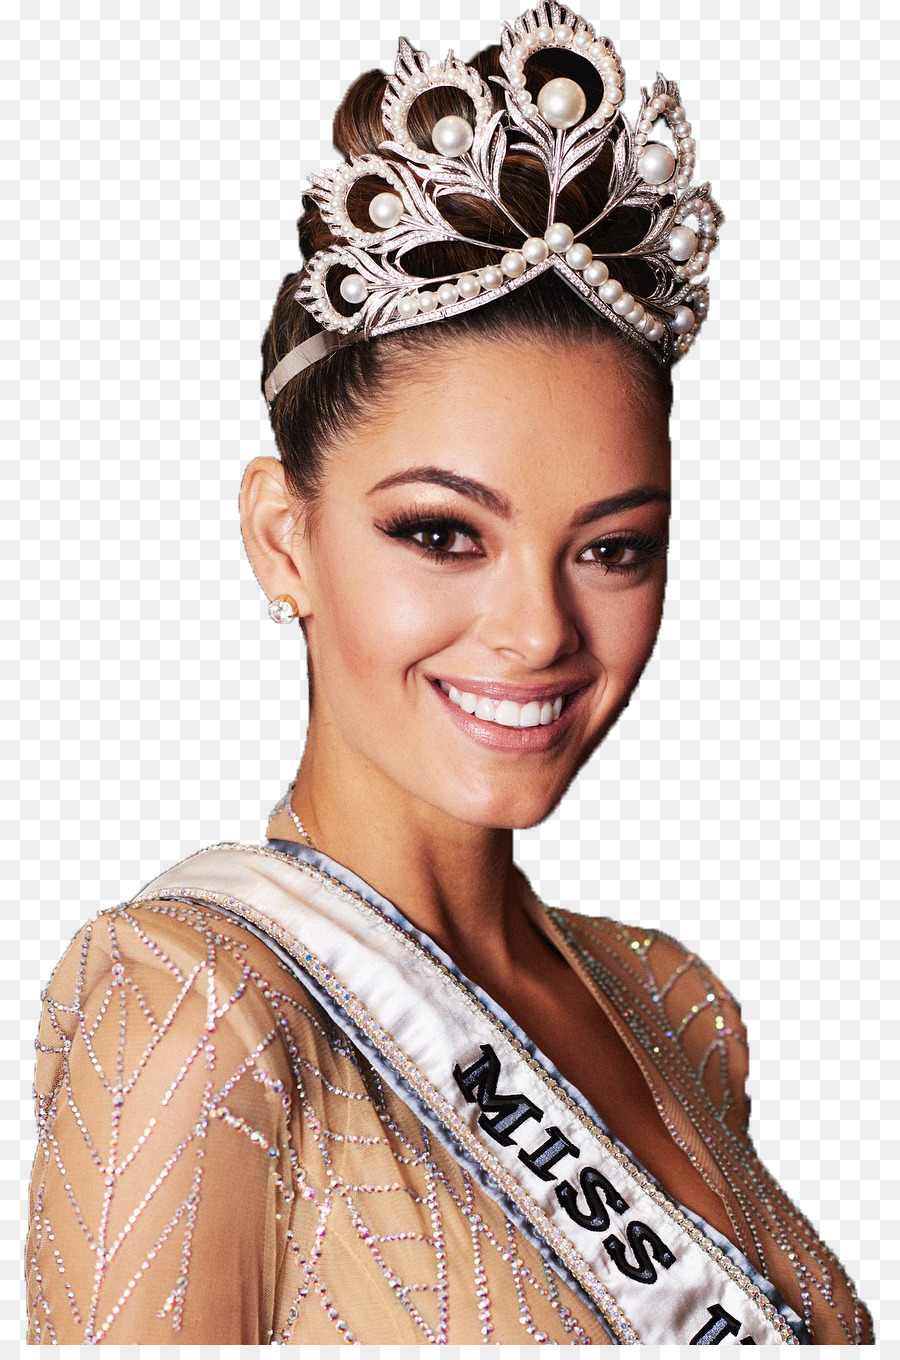 Cartoon Crown Png Download 852 1345 Free Transparent Demileigh Nelpeters Png Download Cleanpng Kisspng Miss universe diamond nexus crowns are available now! cartoon crown png download 852 1345